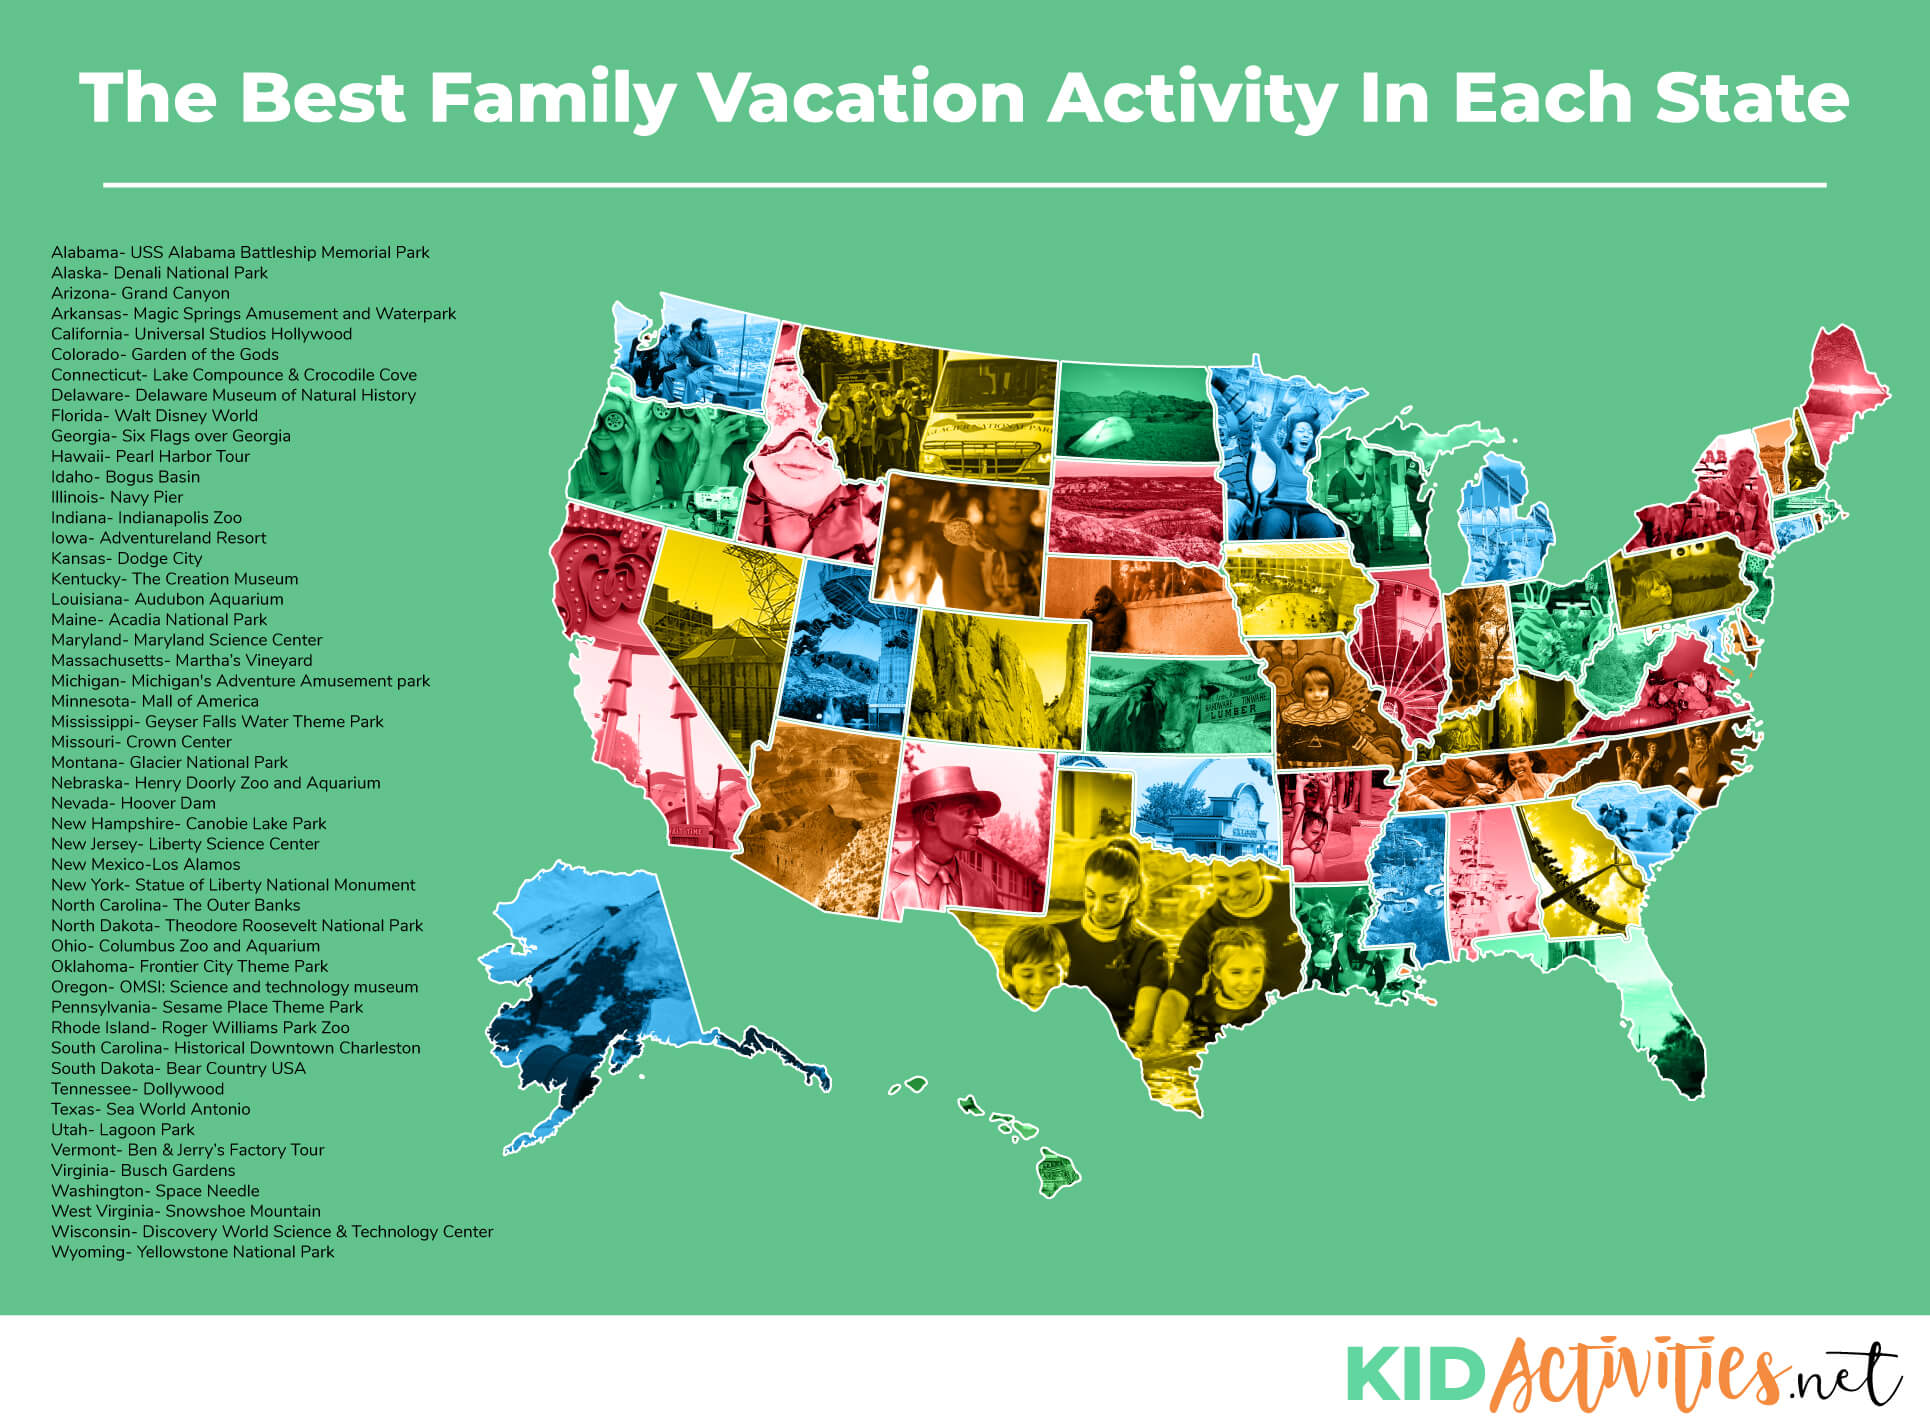 The ultimate family vacation list. The best vacation activities state by state.